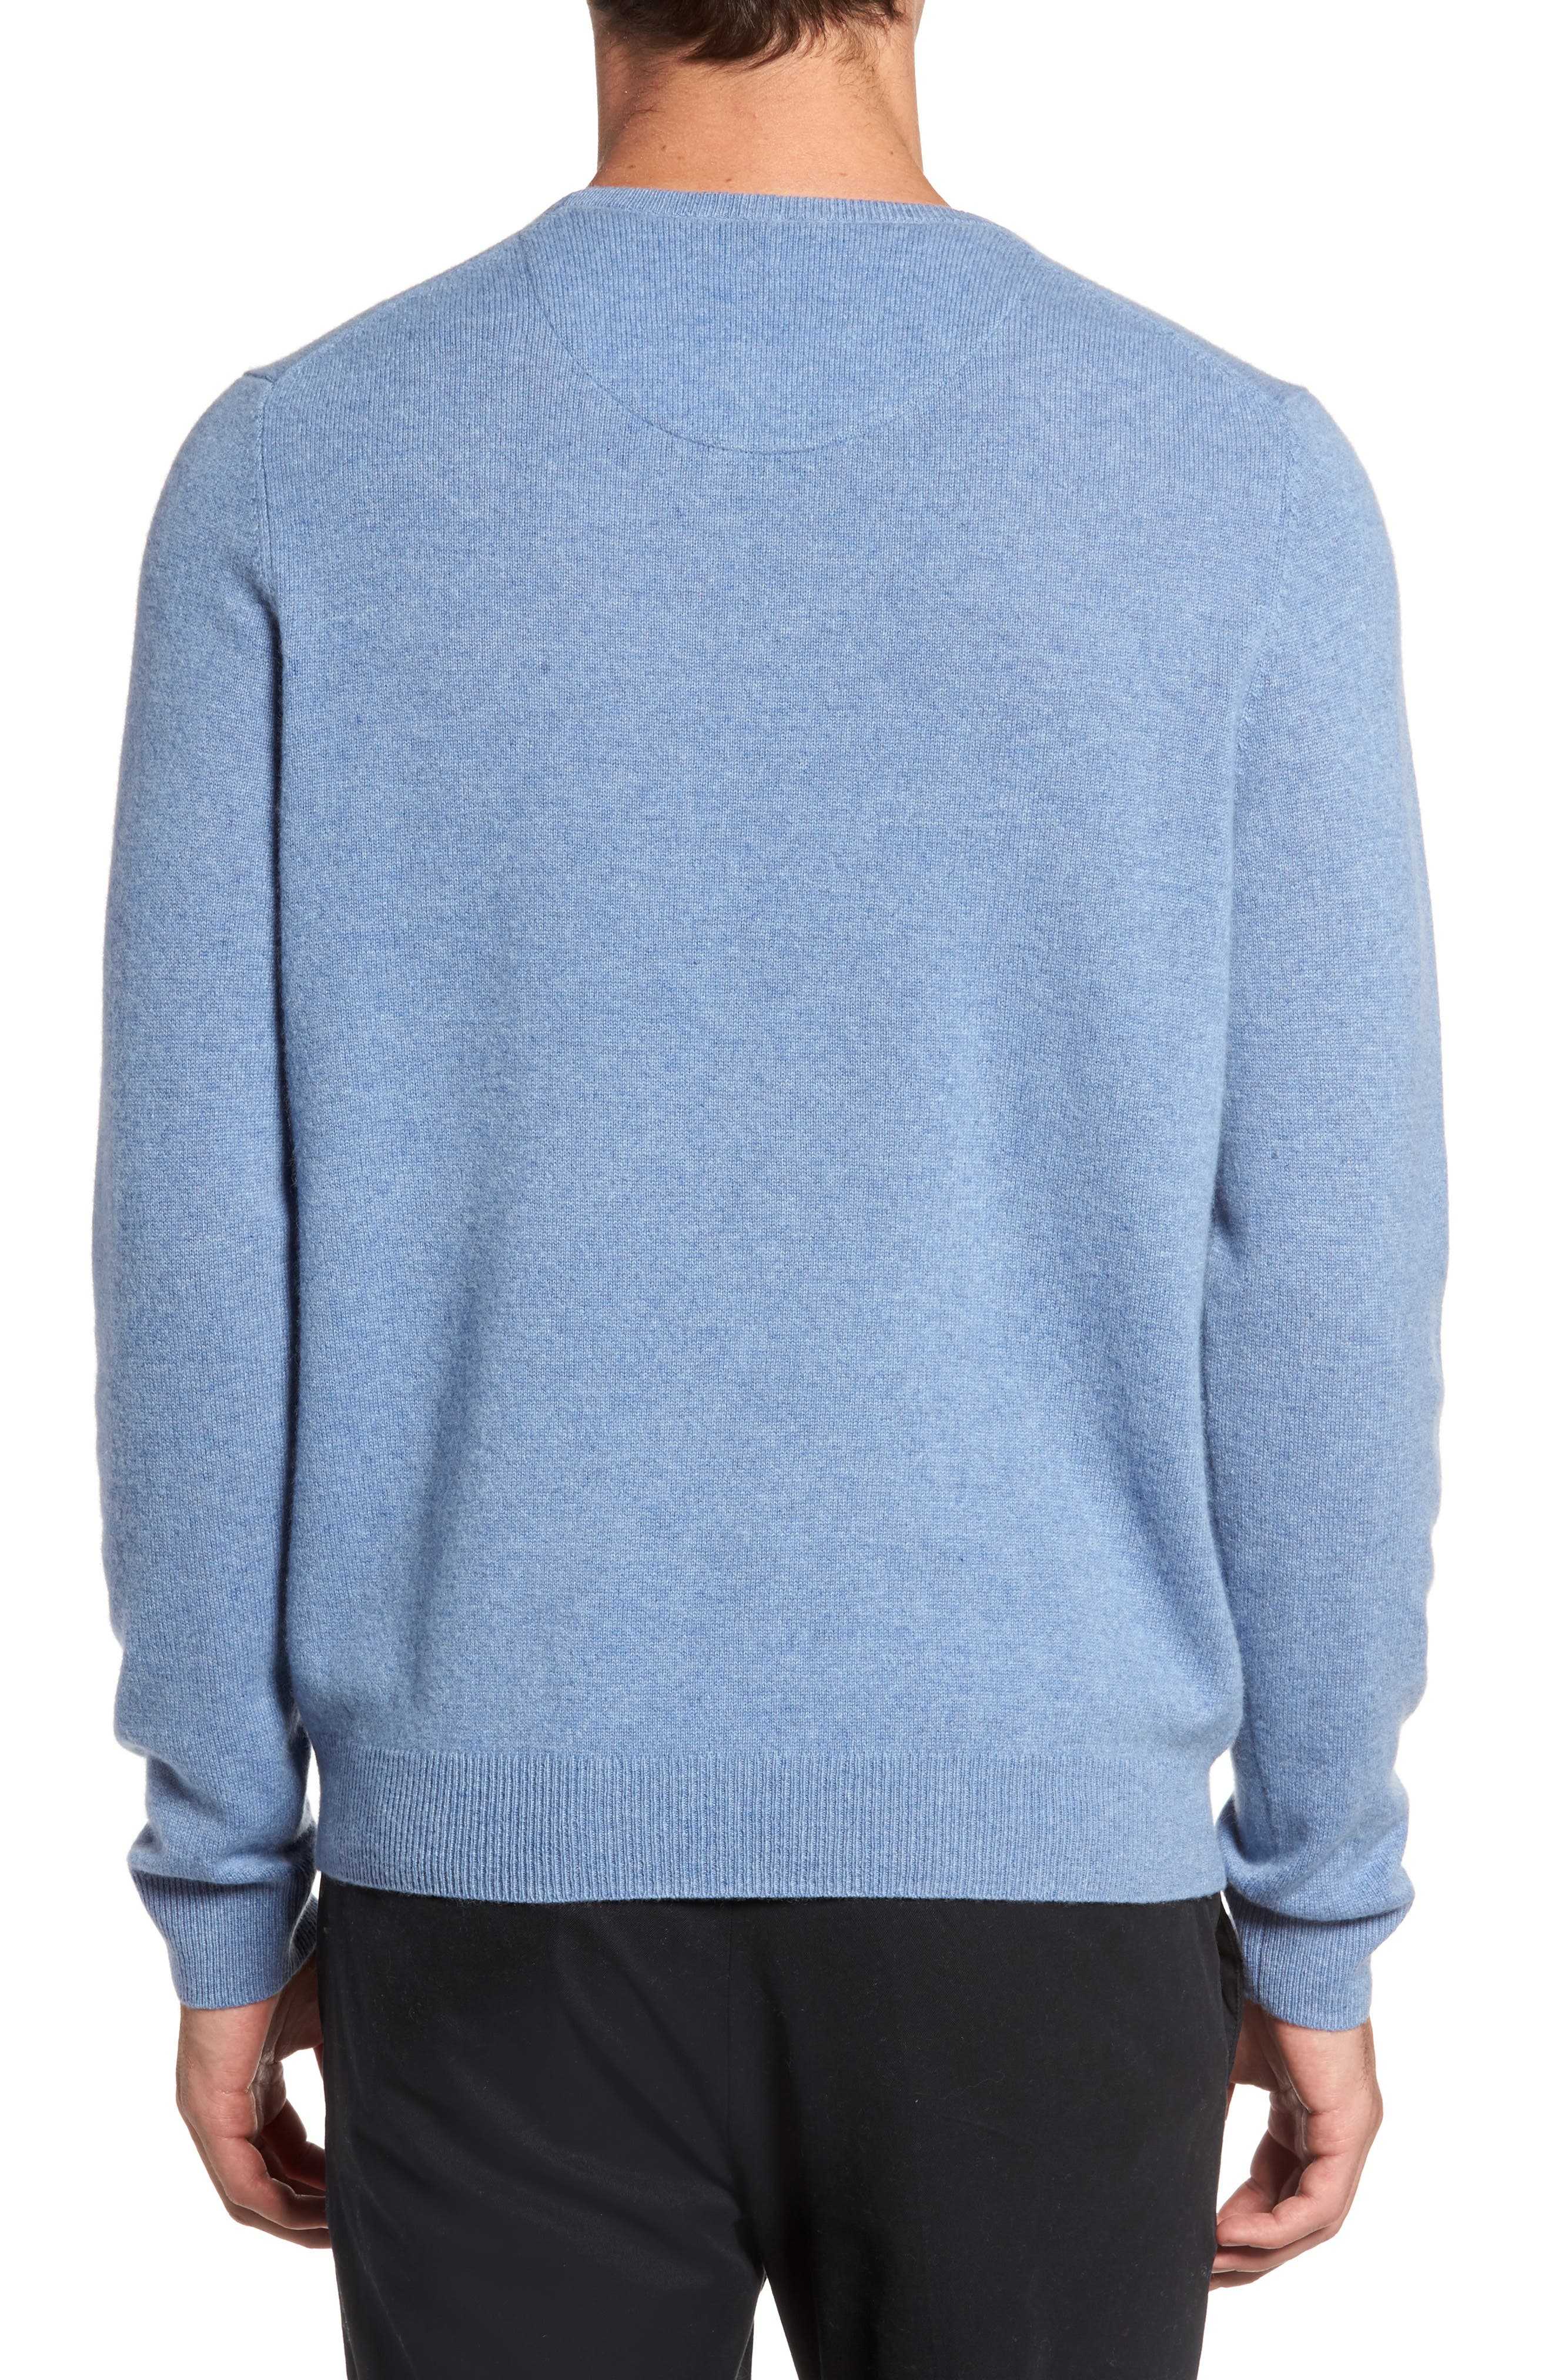 Alternate Image 2  - Nordstrom Men's Shop Cashmere Crewneck Sweater (Regular & Tall)